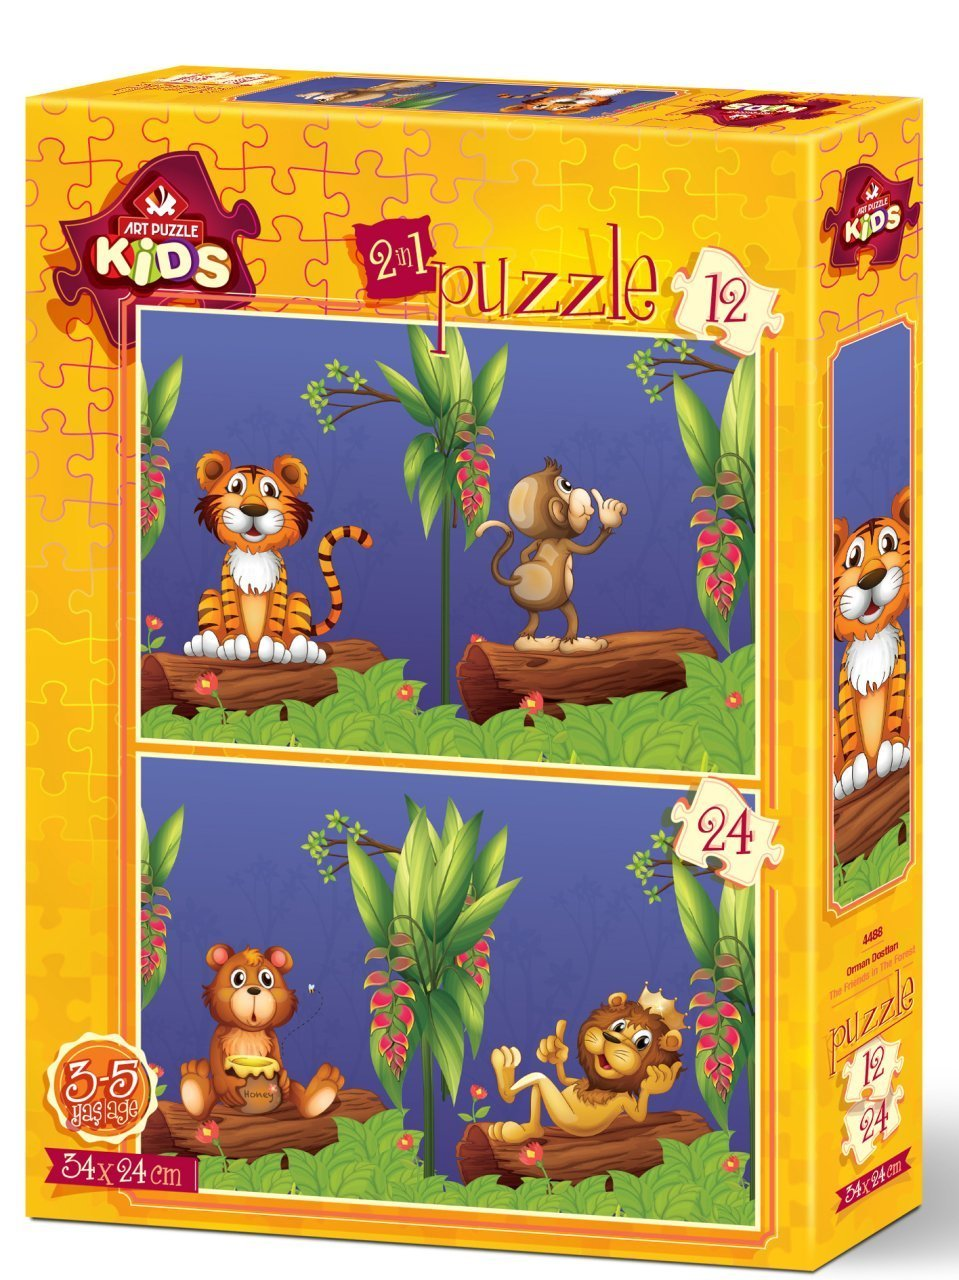 2-puzzles-the-friends-in-the-forest